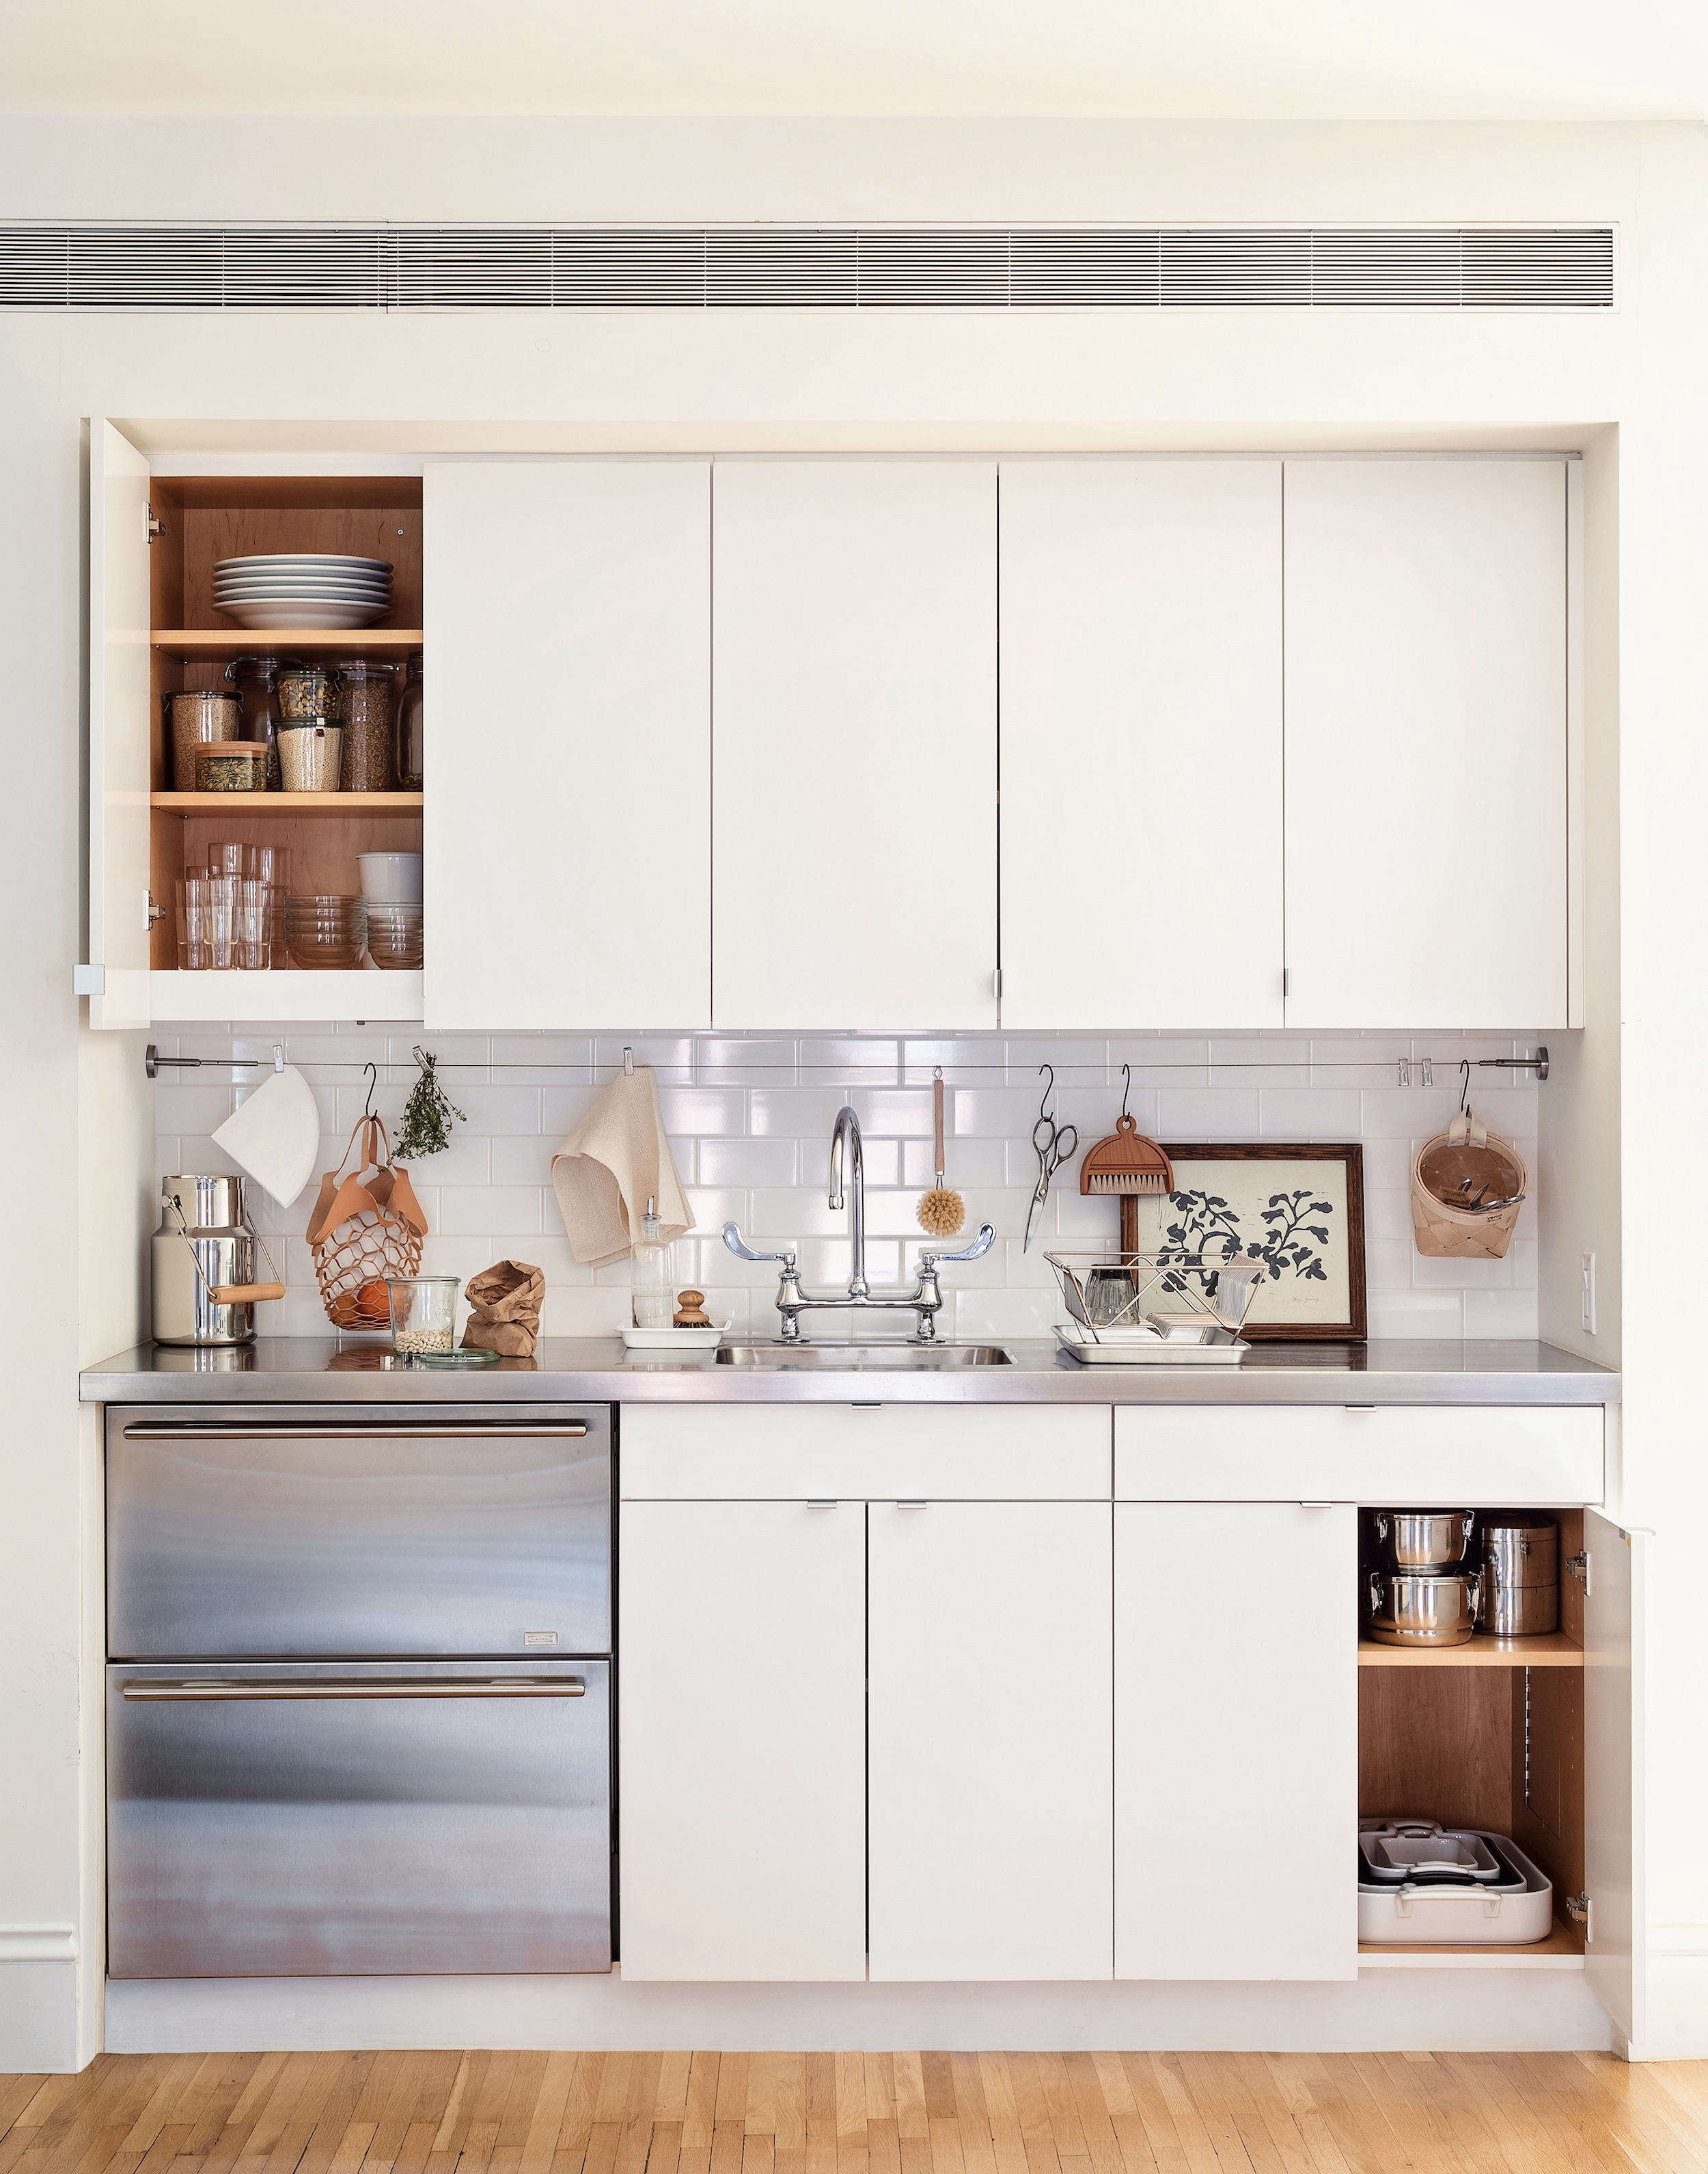 Most Popular Ikea Kitchen Cabinets: These Were The Most Popular Posts On Our Sites This Week